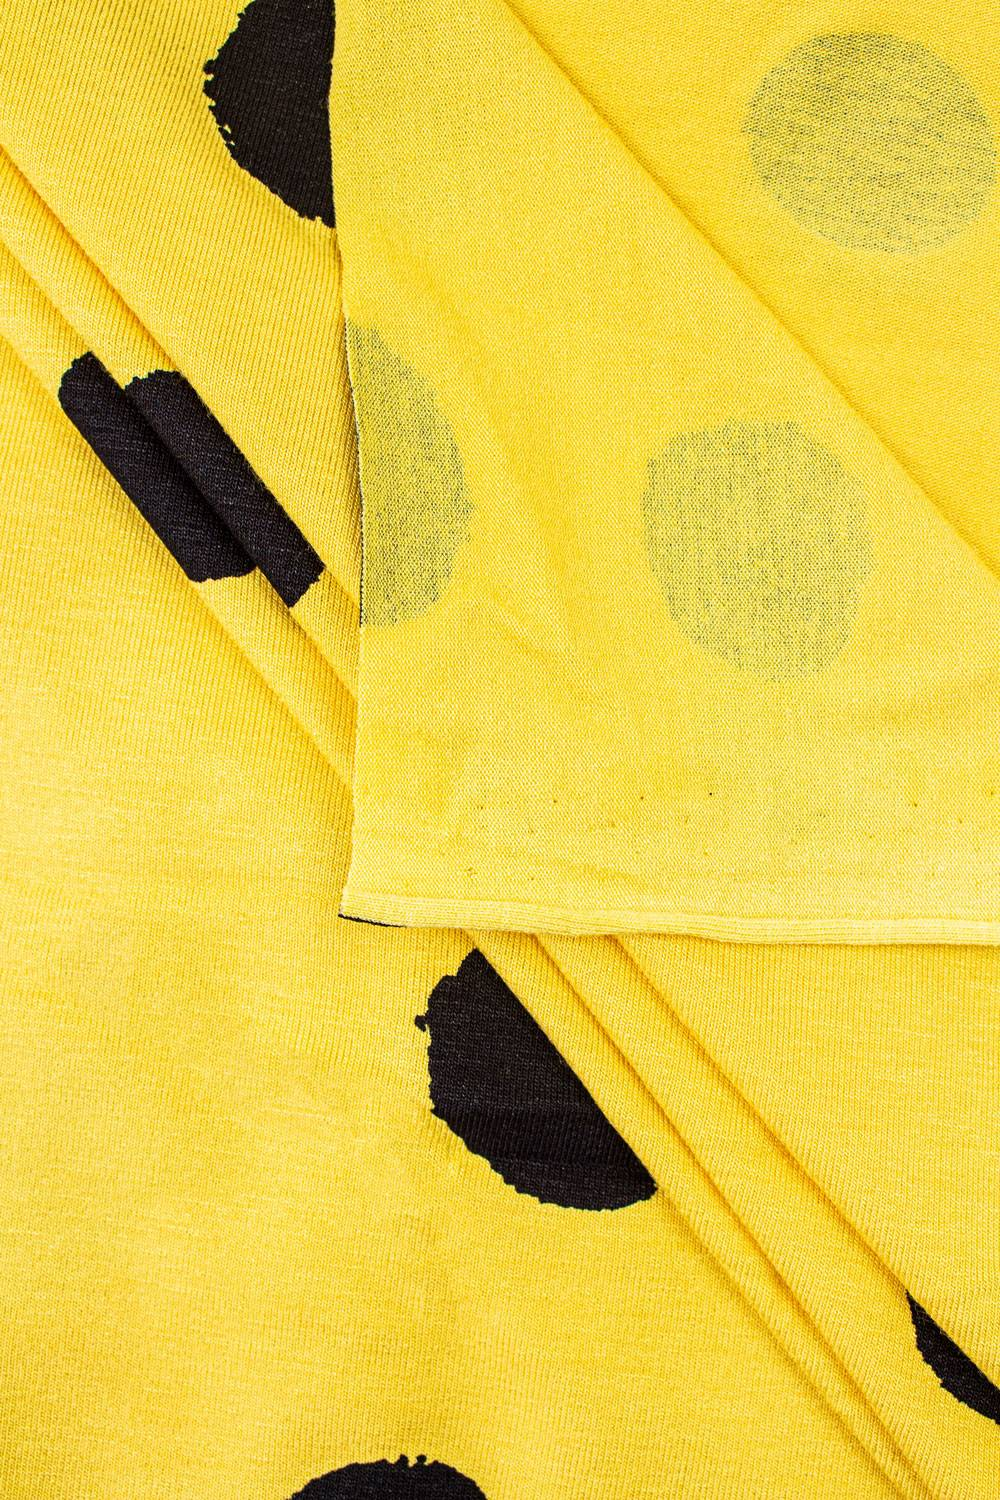 Knit - Viscose Jersey - Yellow With Big Black Ink Spots - 155 cm - 160 g/m2